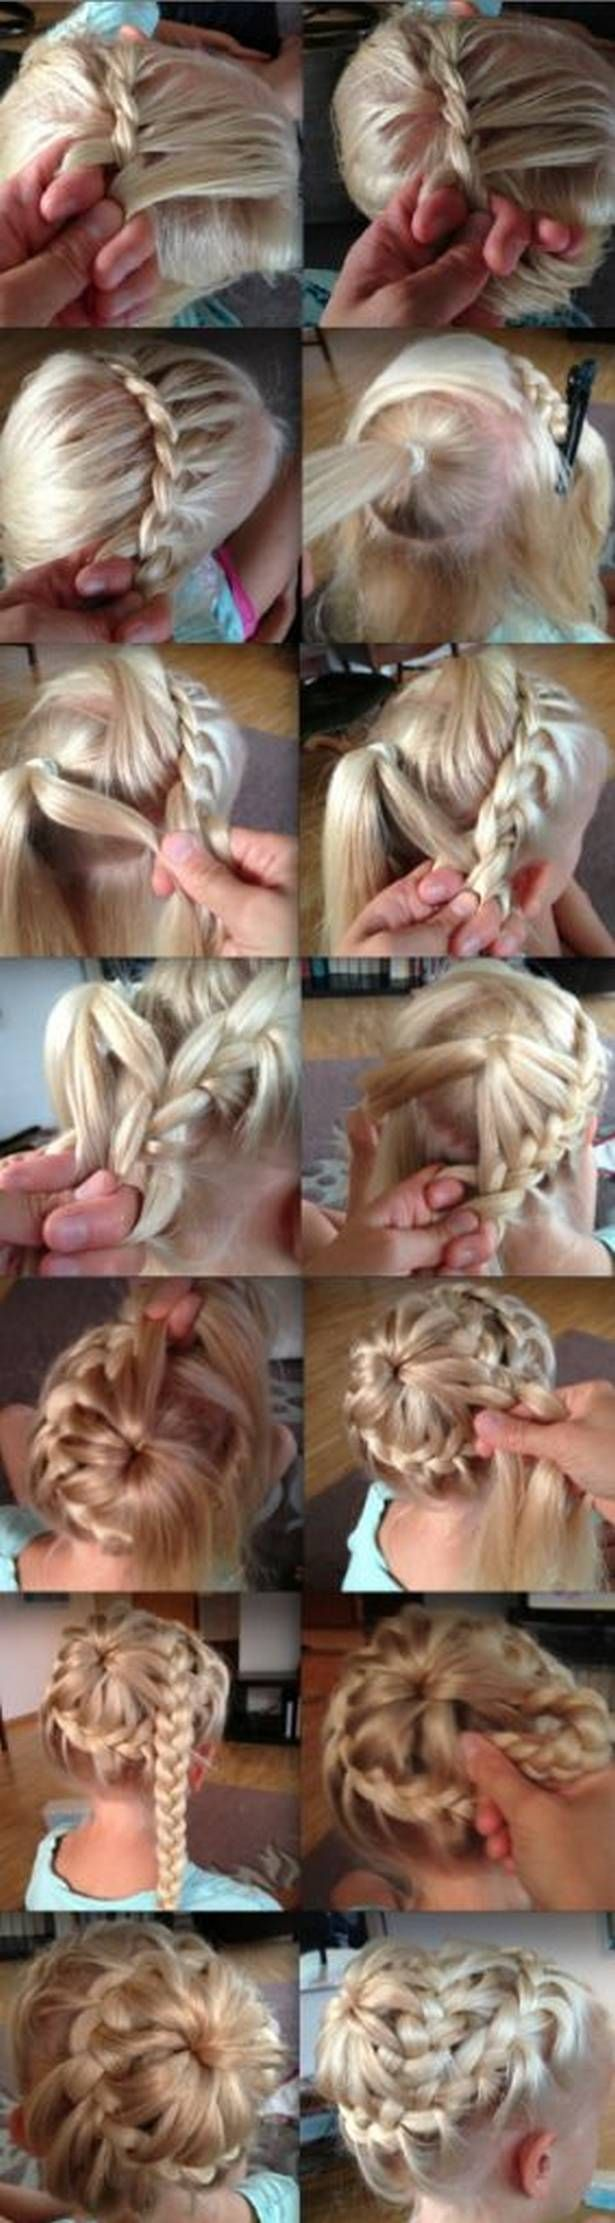 Wonderful Braided Hairstyles Step by Step Tutorials 5 Wonderful Braided Hairstyles Step by Step Tutorials// cant wait for avas hair to grow long again!!